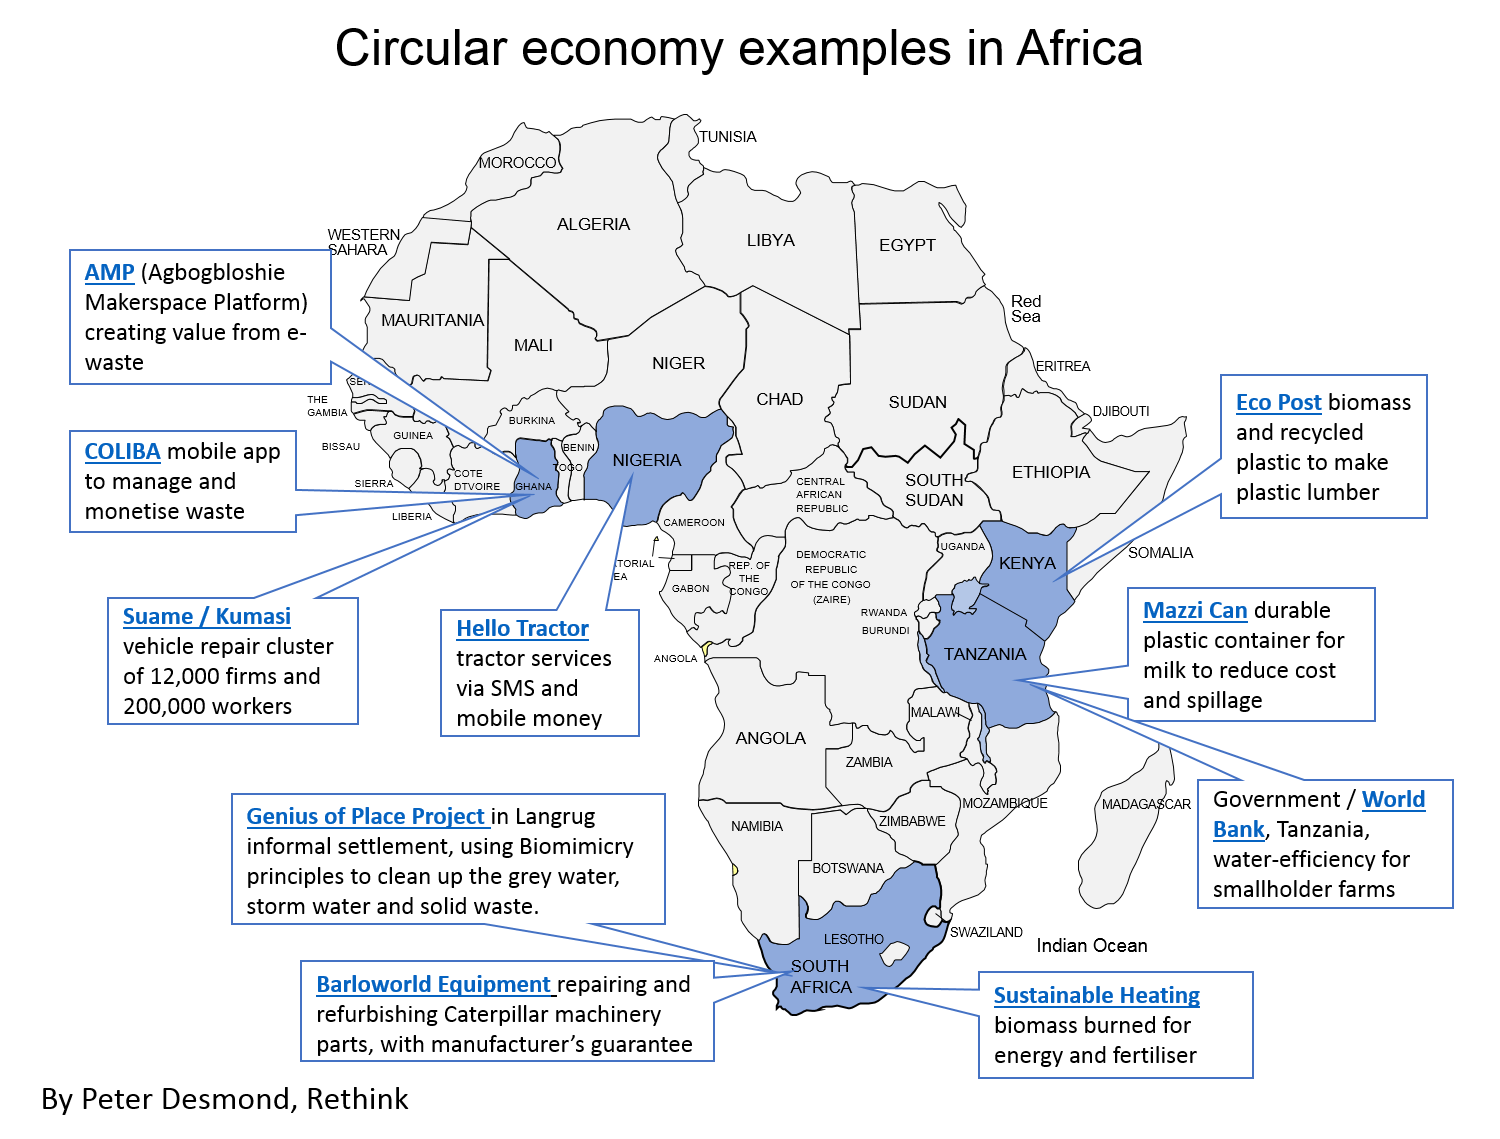 Circular economy examples in Africa, by Peter Desmond, Rethink